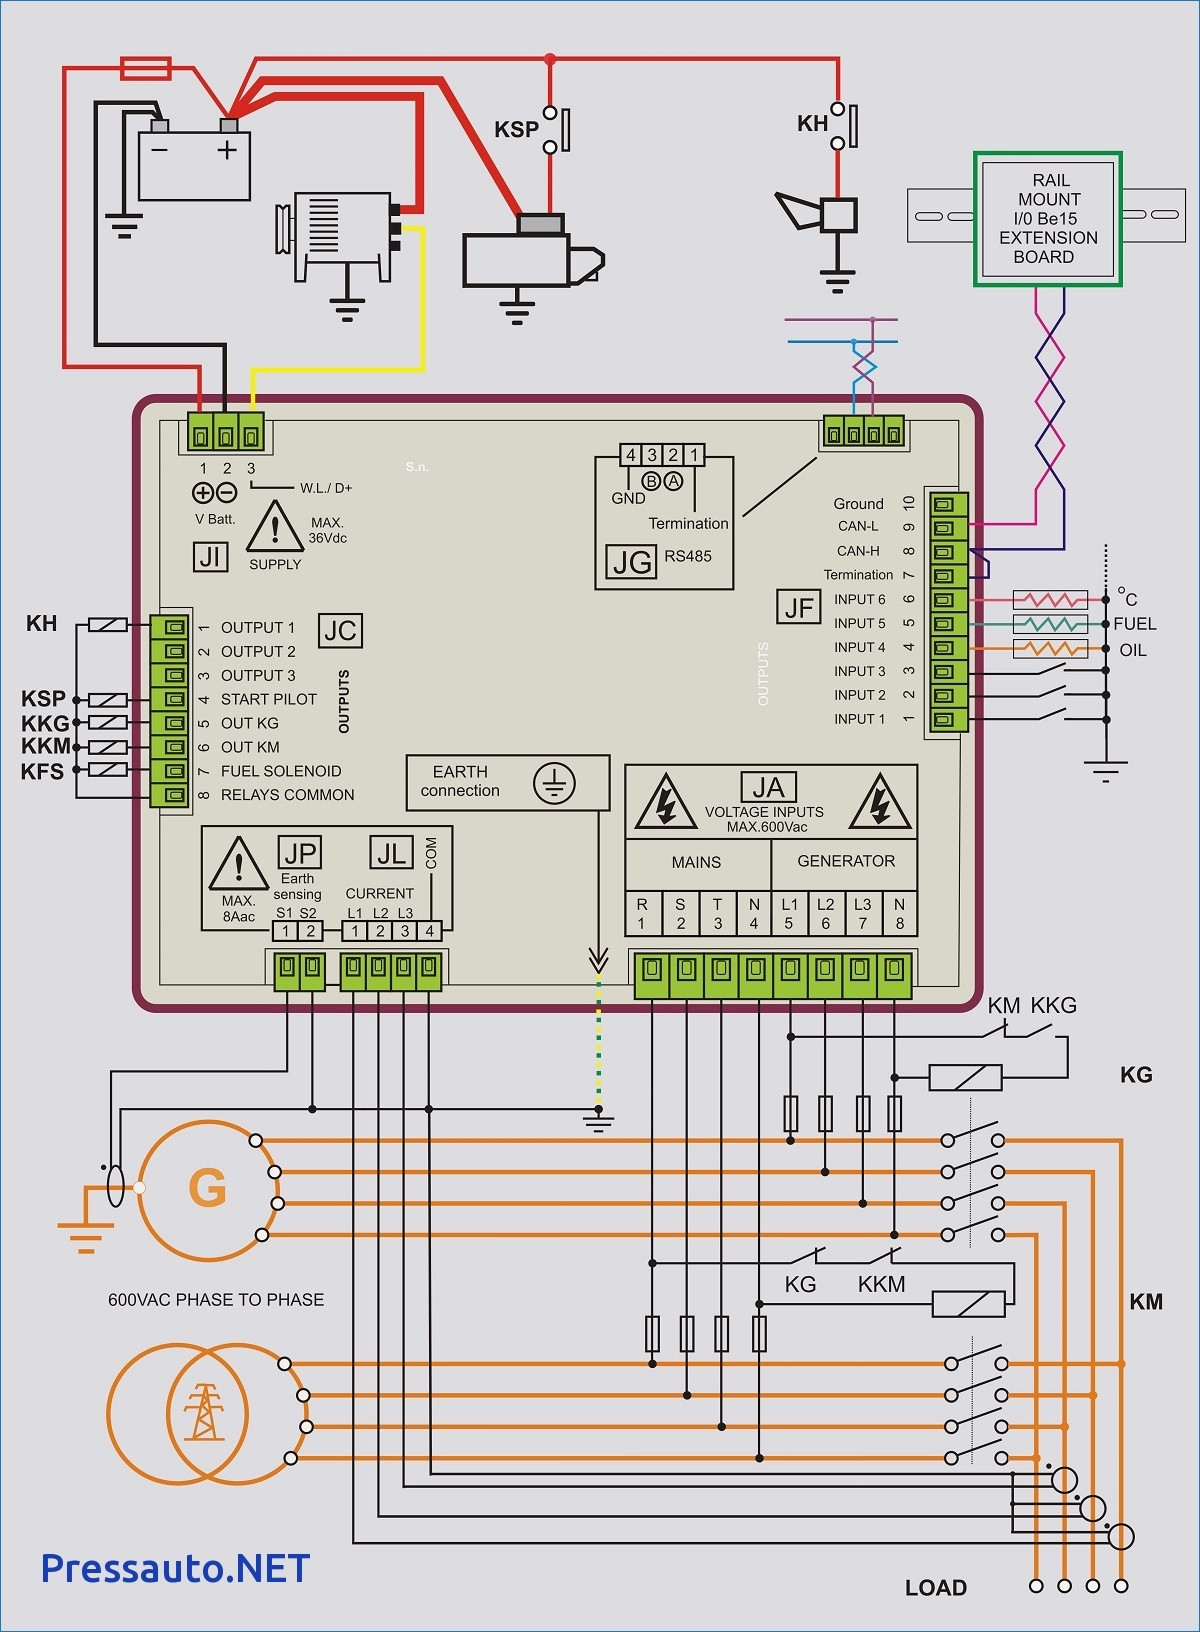 amp wiring diagram instructions 3 way light switch with dimmer generac 100 automatic transfer